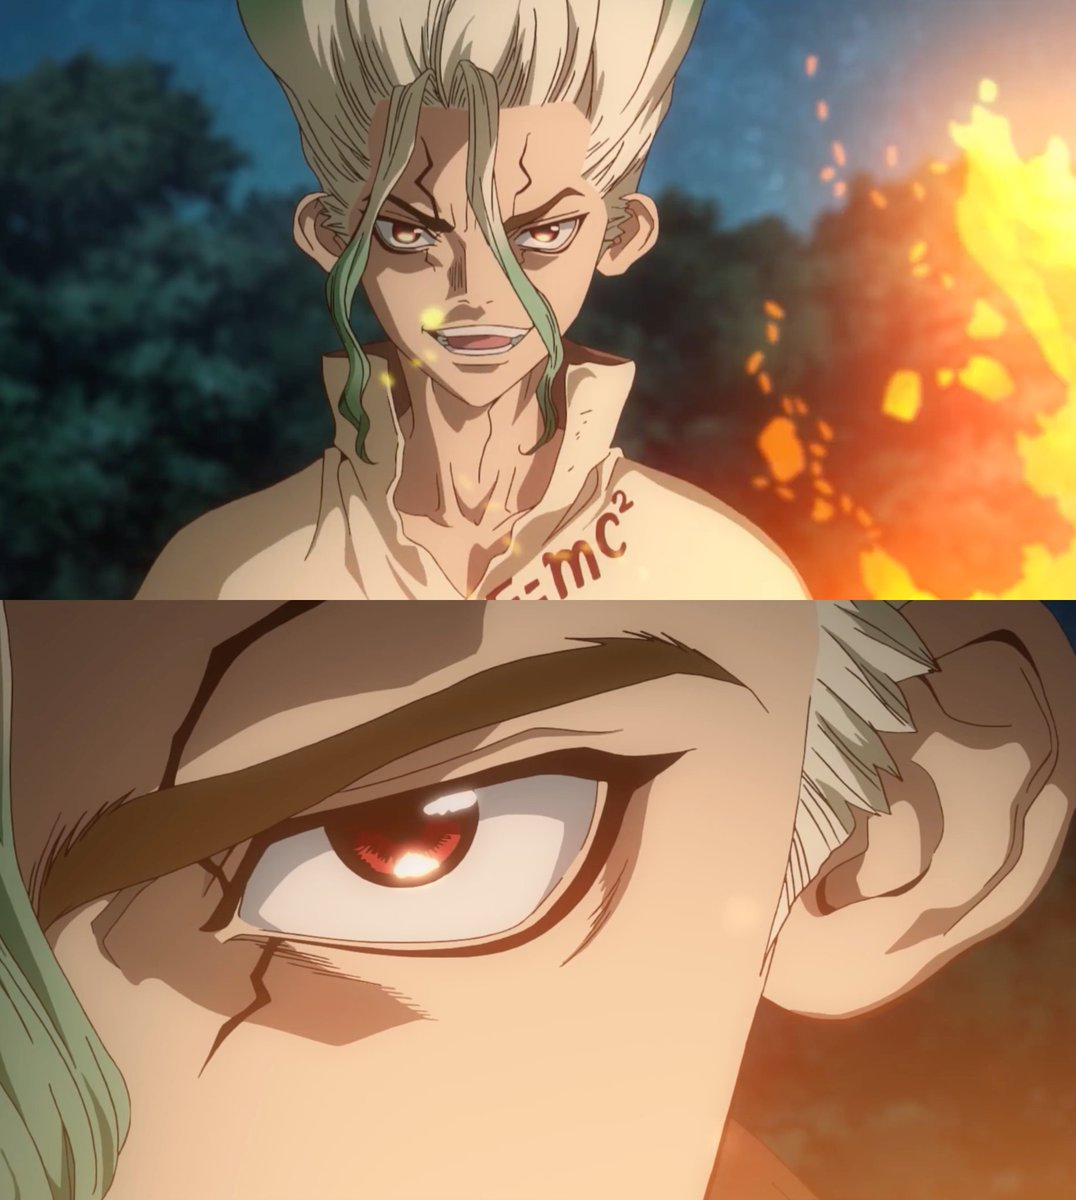 """A year ago, Senku woke up, and we listen to """"OHAYOU SEKAI, GOOD MORNING WORLD!"""" for the first time  (via @DrStone_EN)<br>http://pic.twitter.com/sp6lhQAtok"""